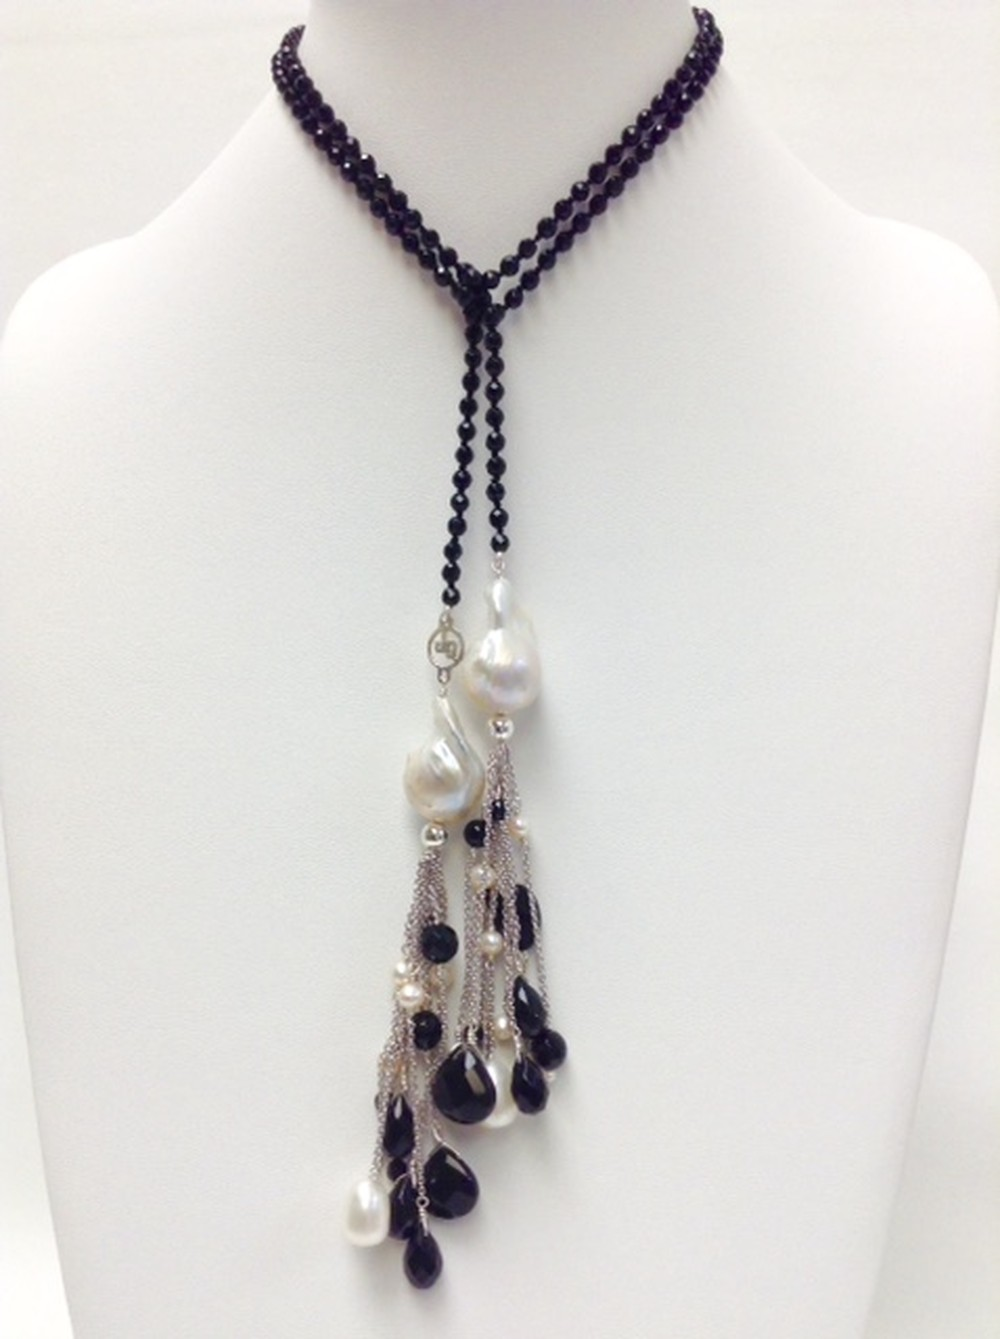 Double Tassel Necklace in Pearl and Onyx